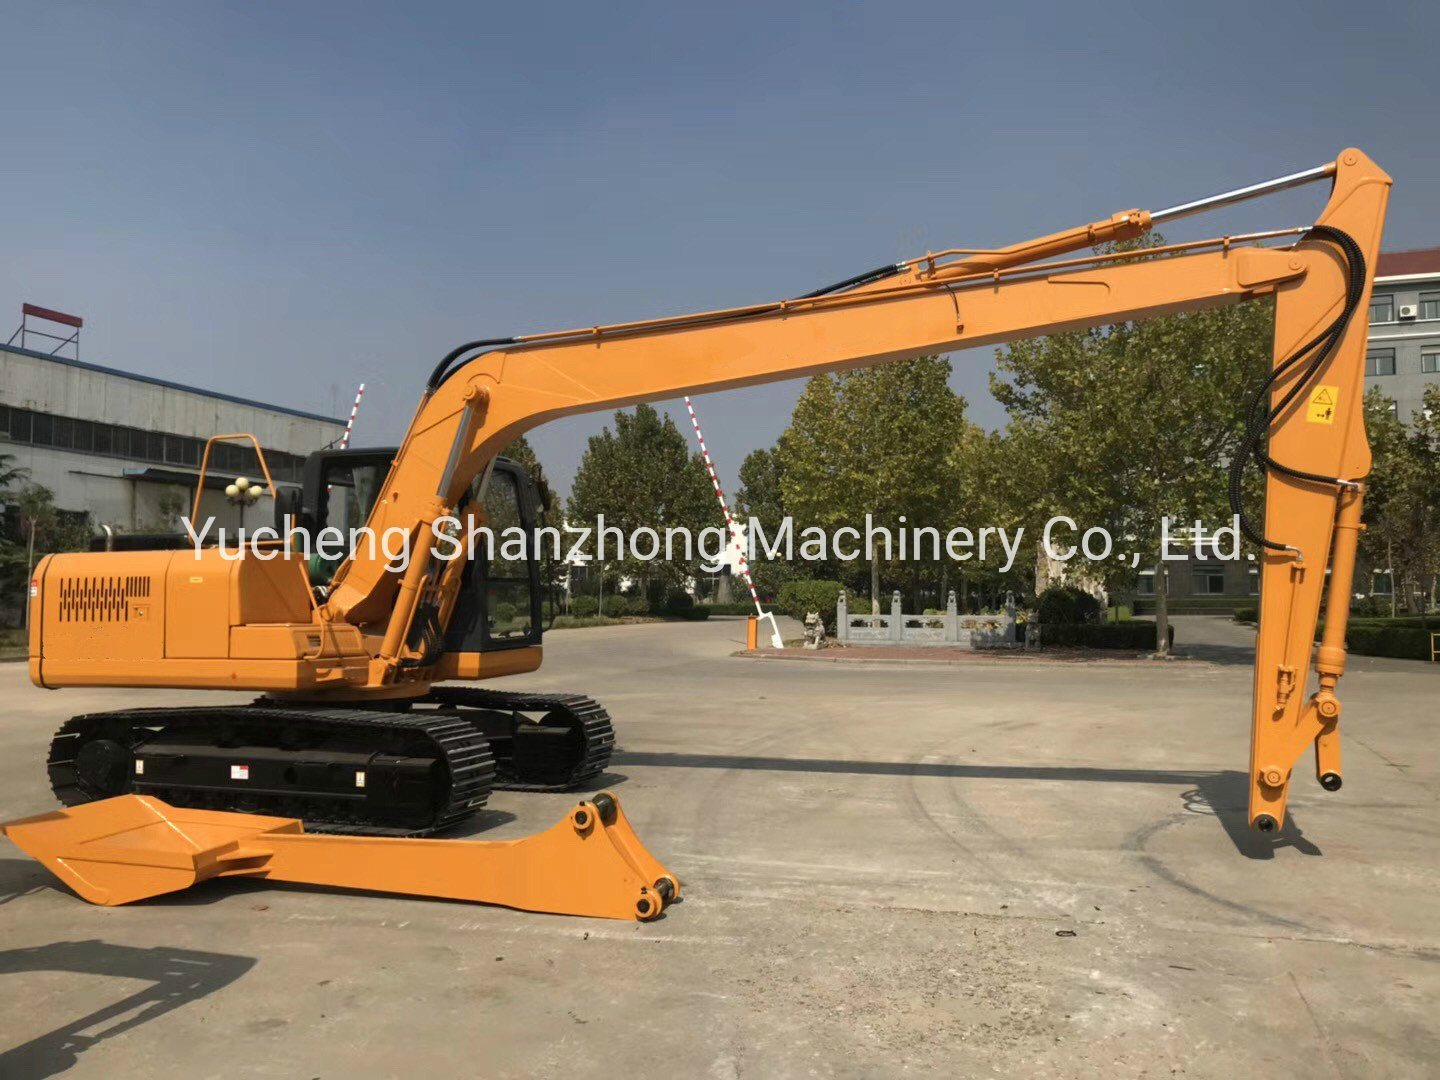 Shanzhong 23 Ton Earth Moving Construction Equipment Crawler Rc Excavators For Sale China Wheel Excavator Excavator Made In China Com